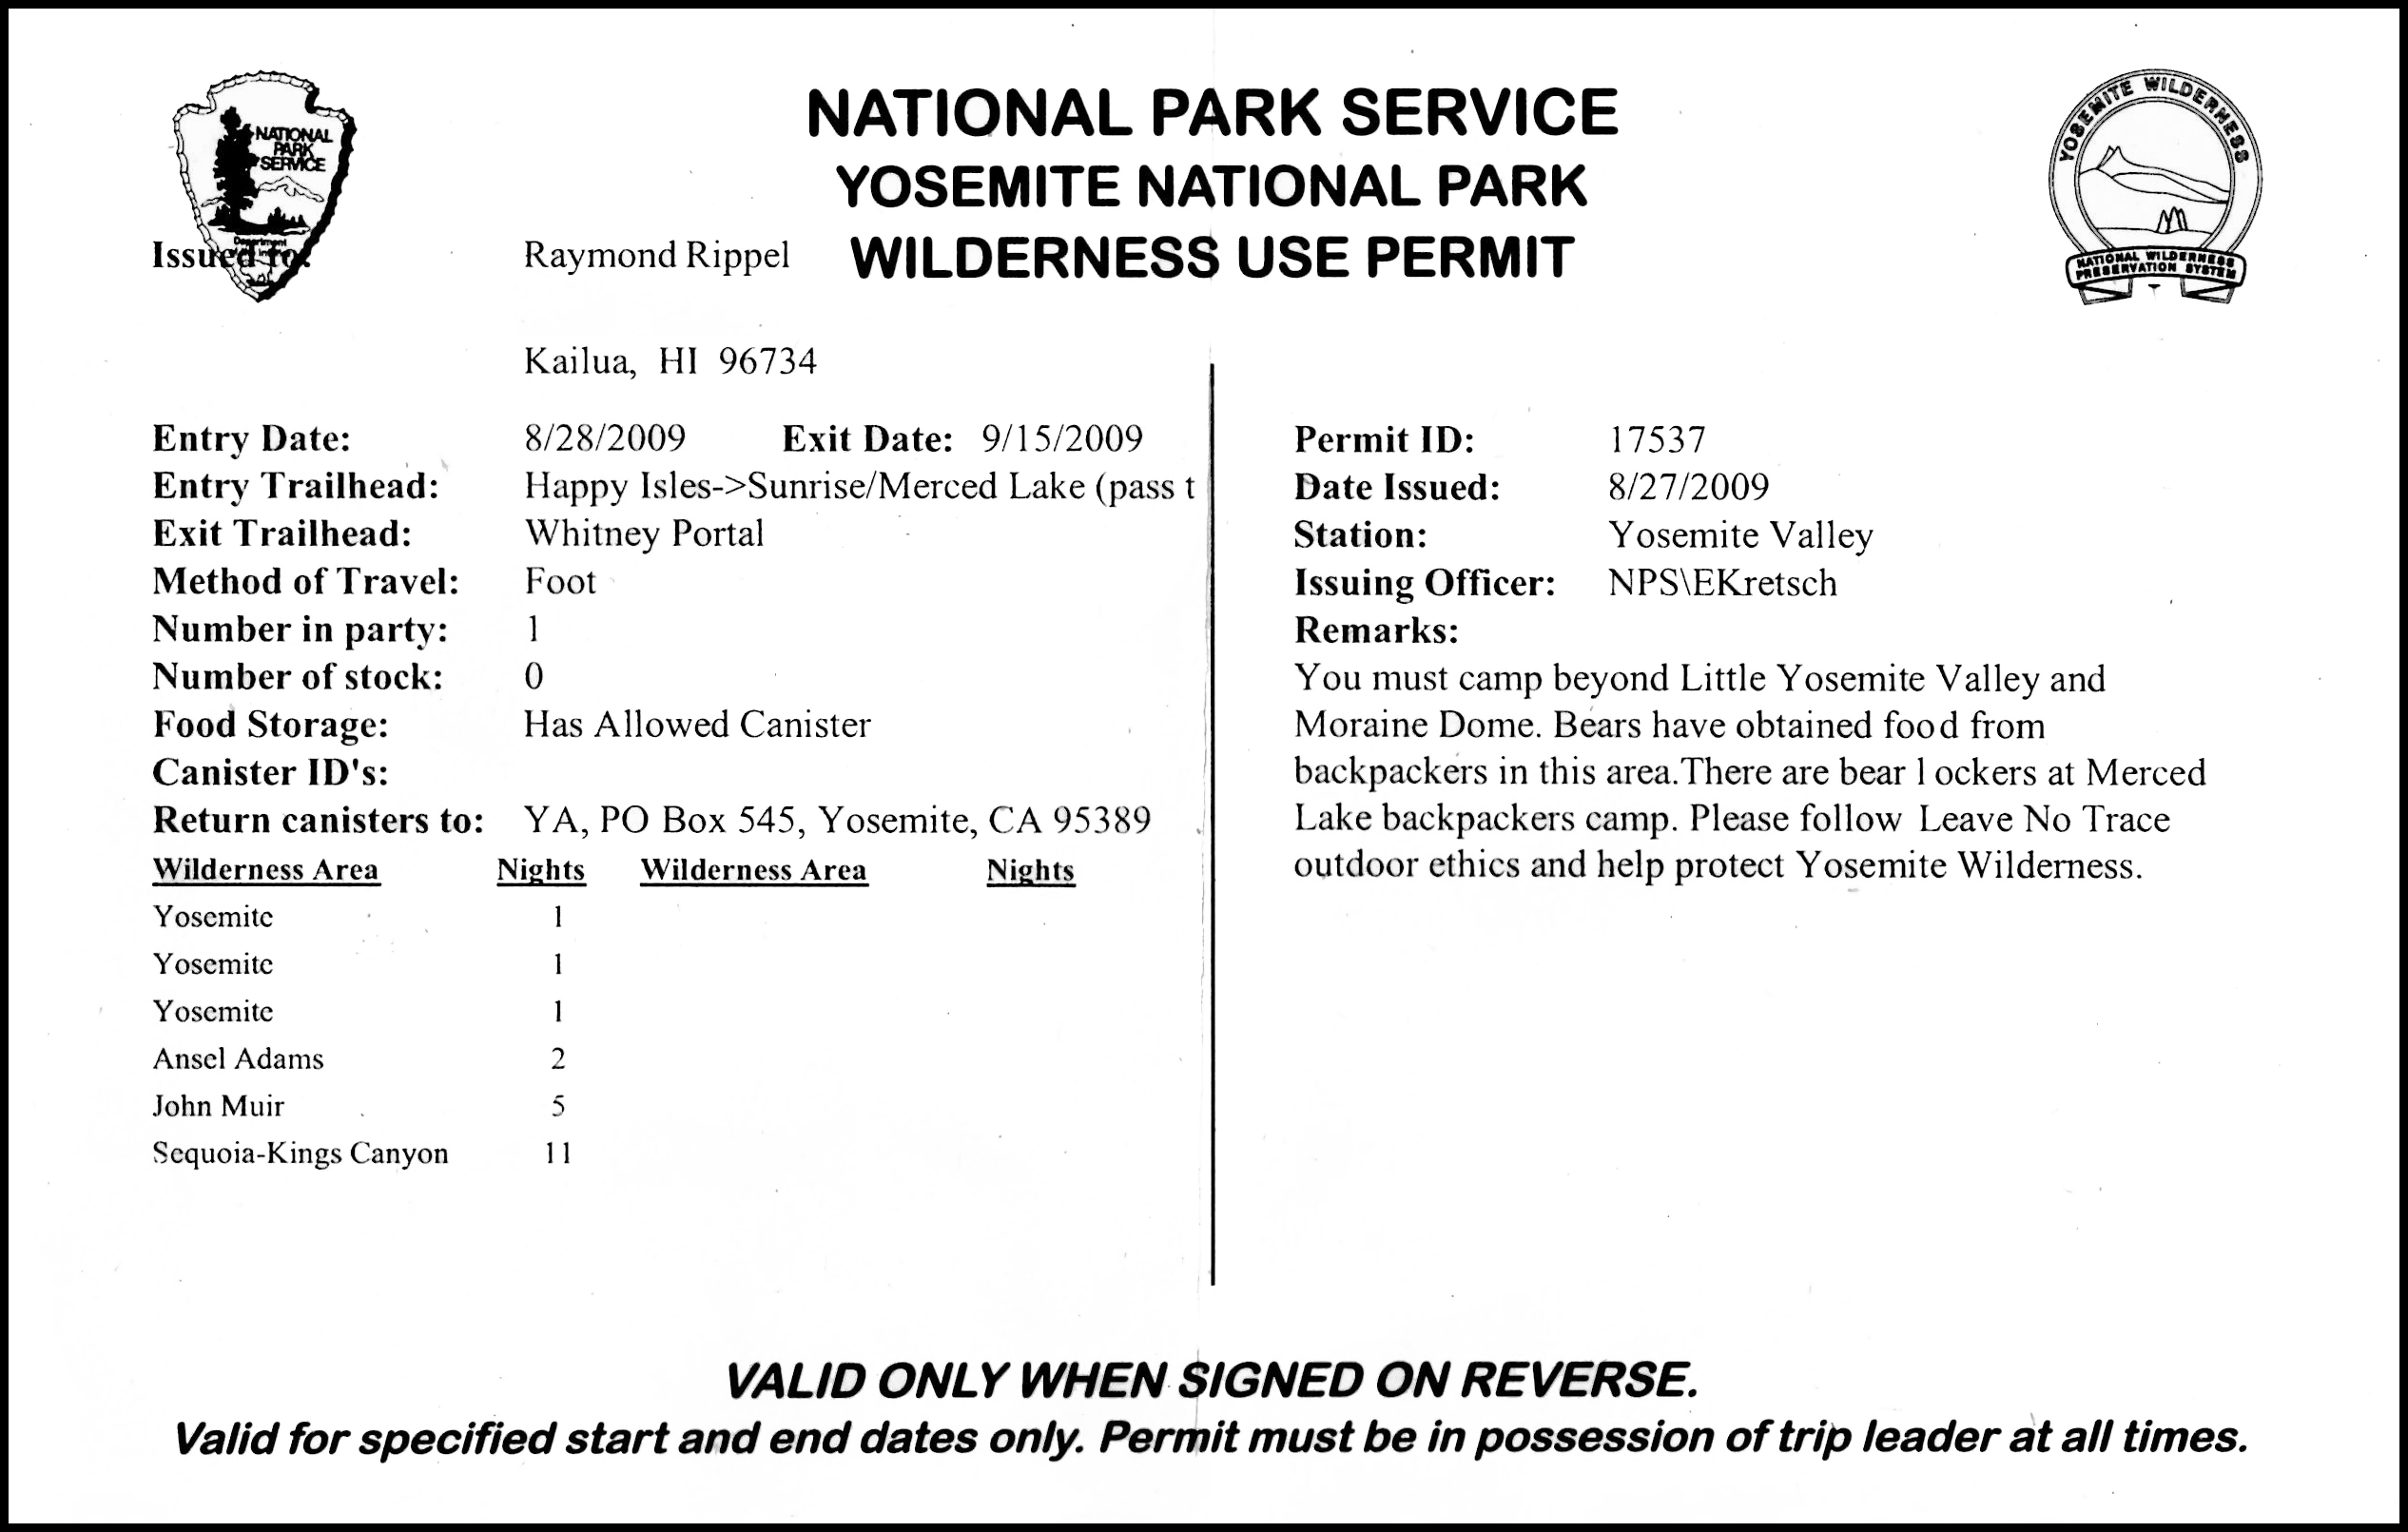 An example of a JMT Permit